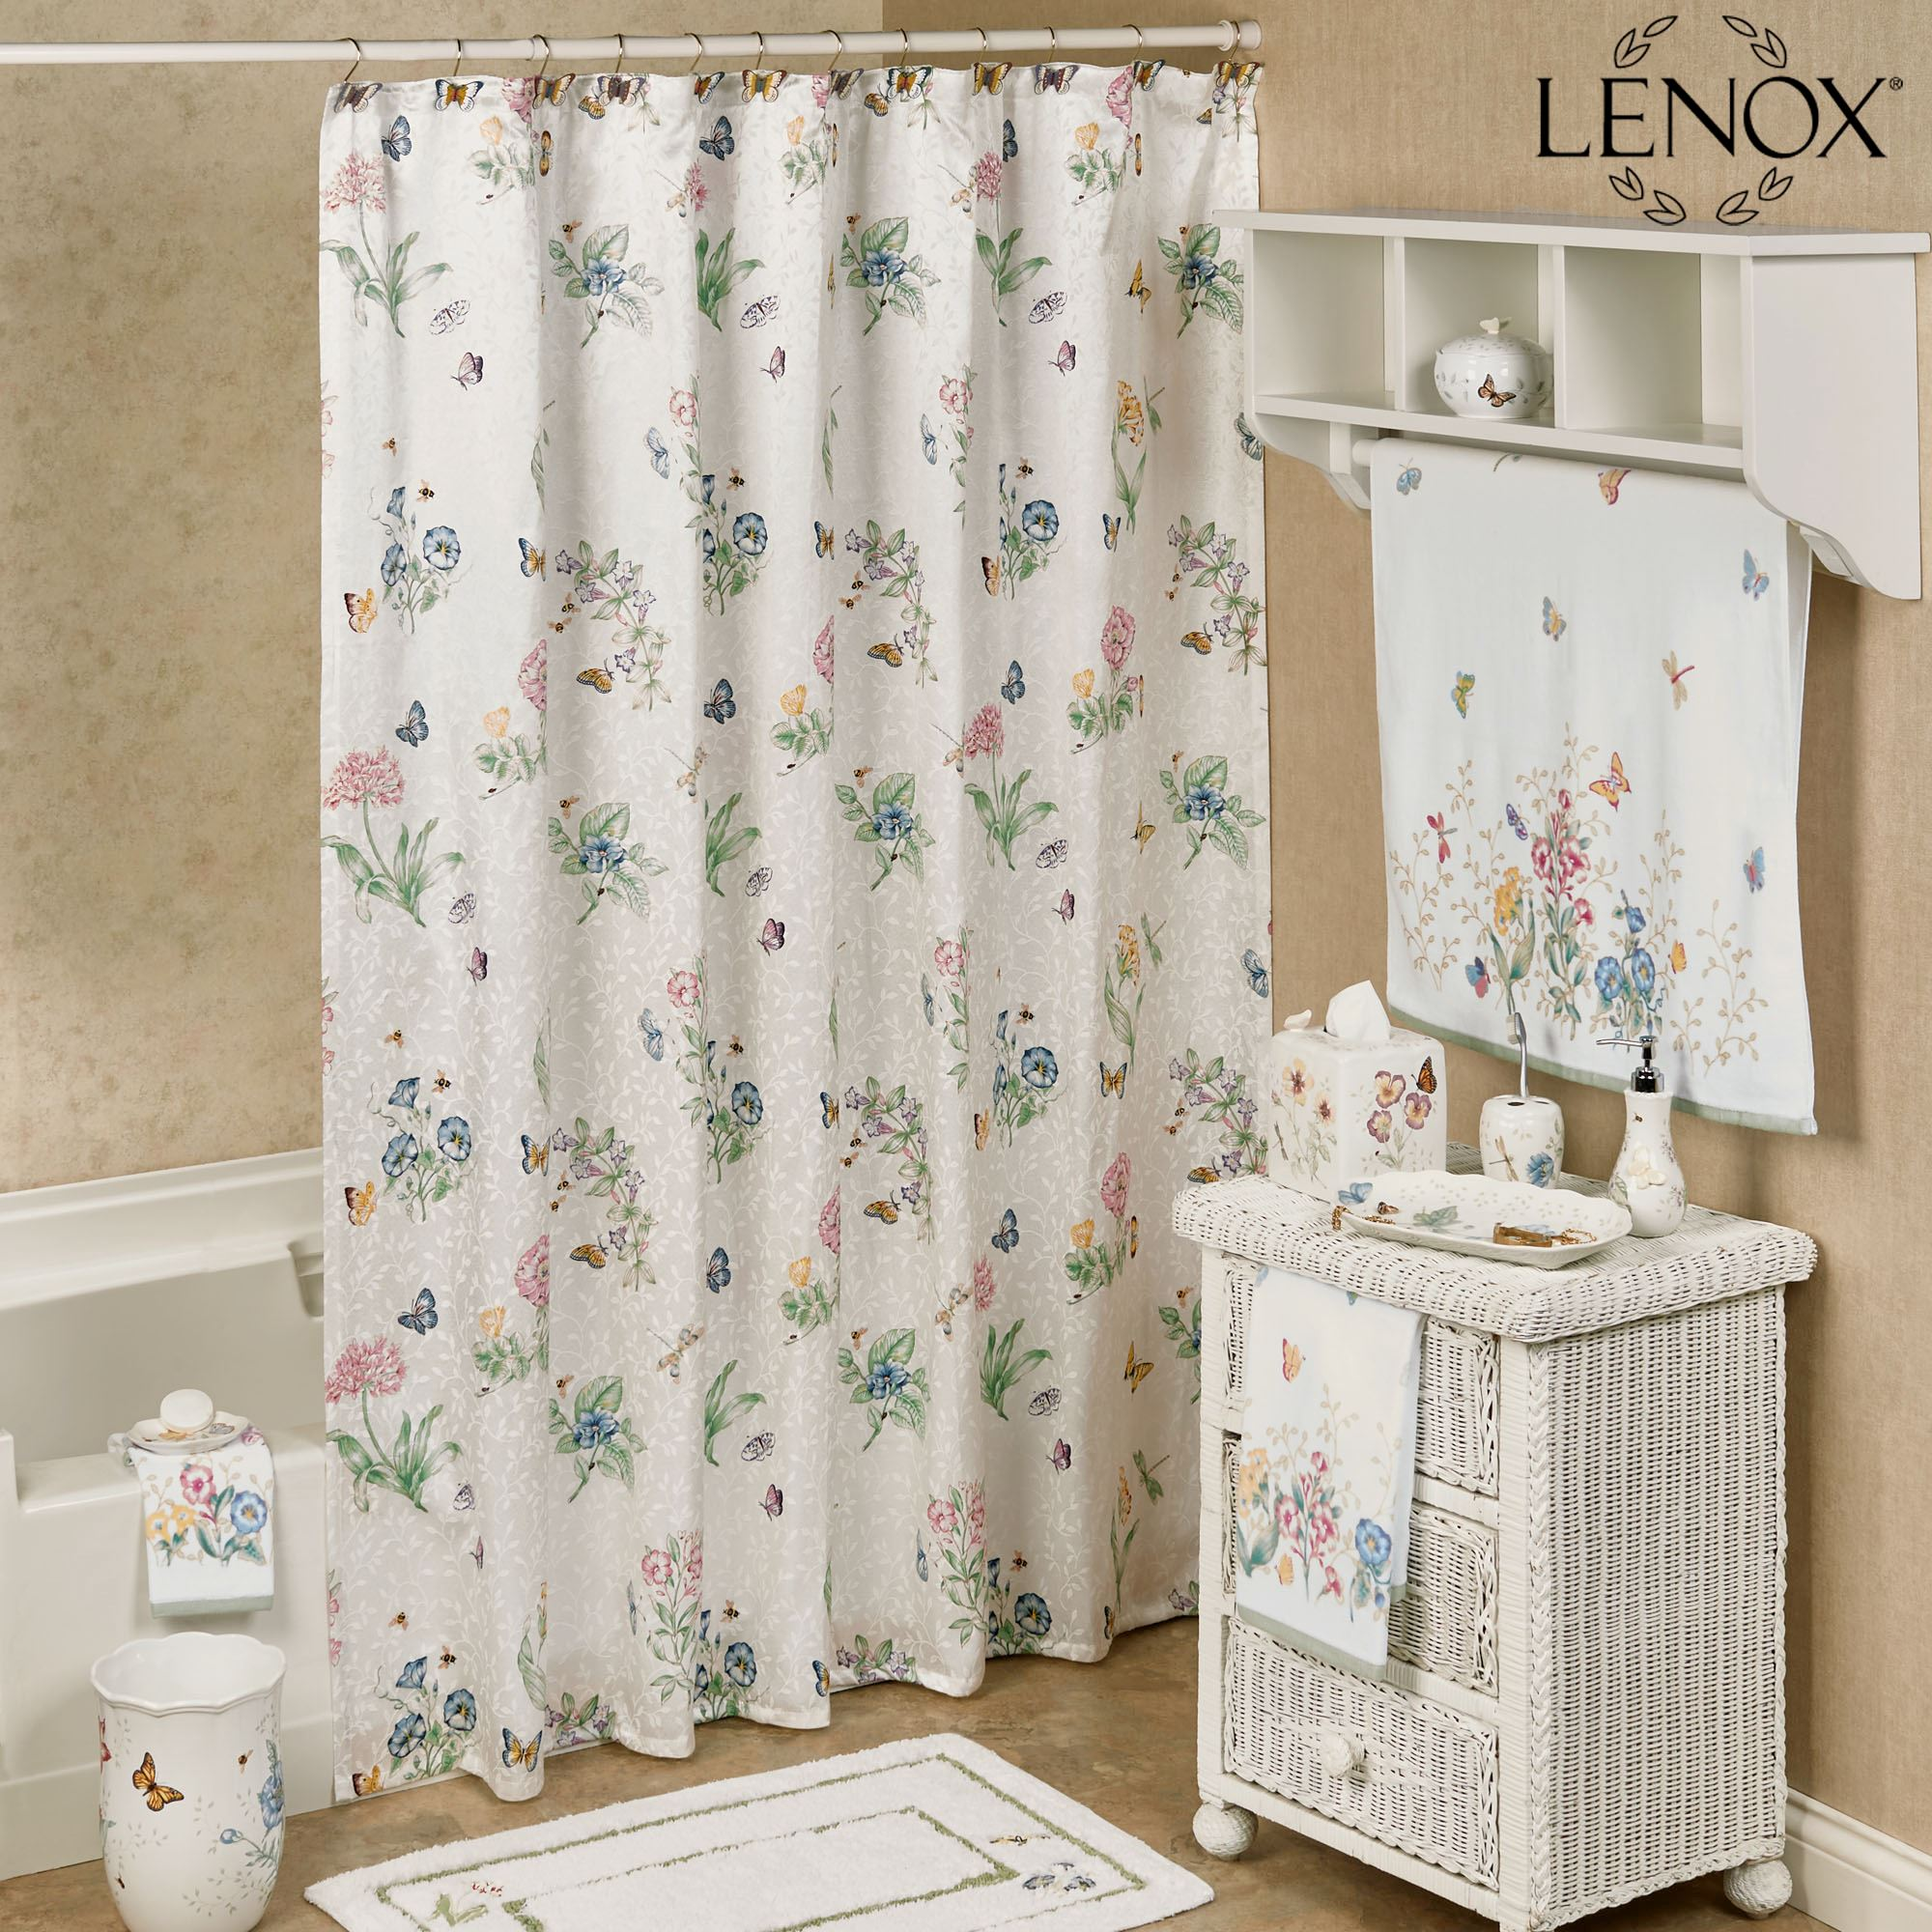 Bathroom Shower Curtain Lenox Butterfly Meadow Shower Curtain